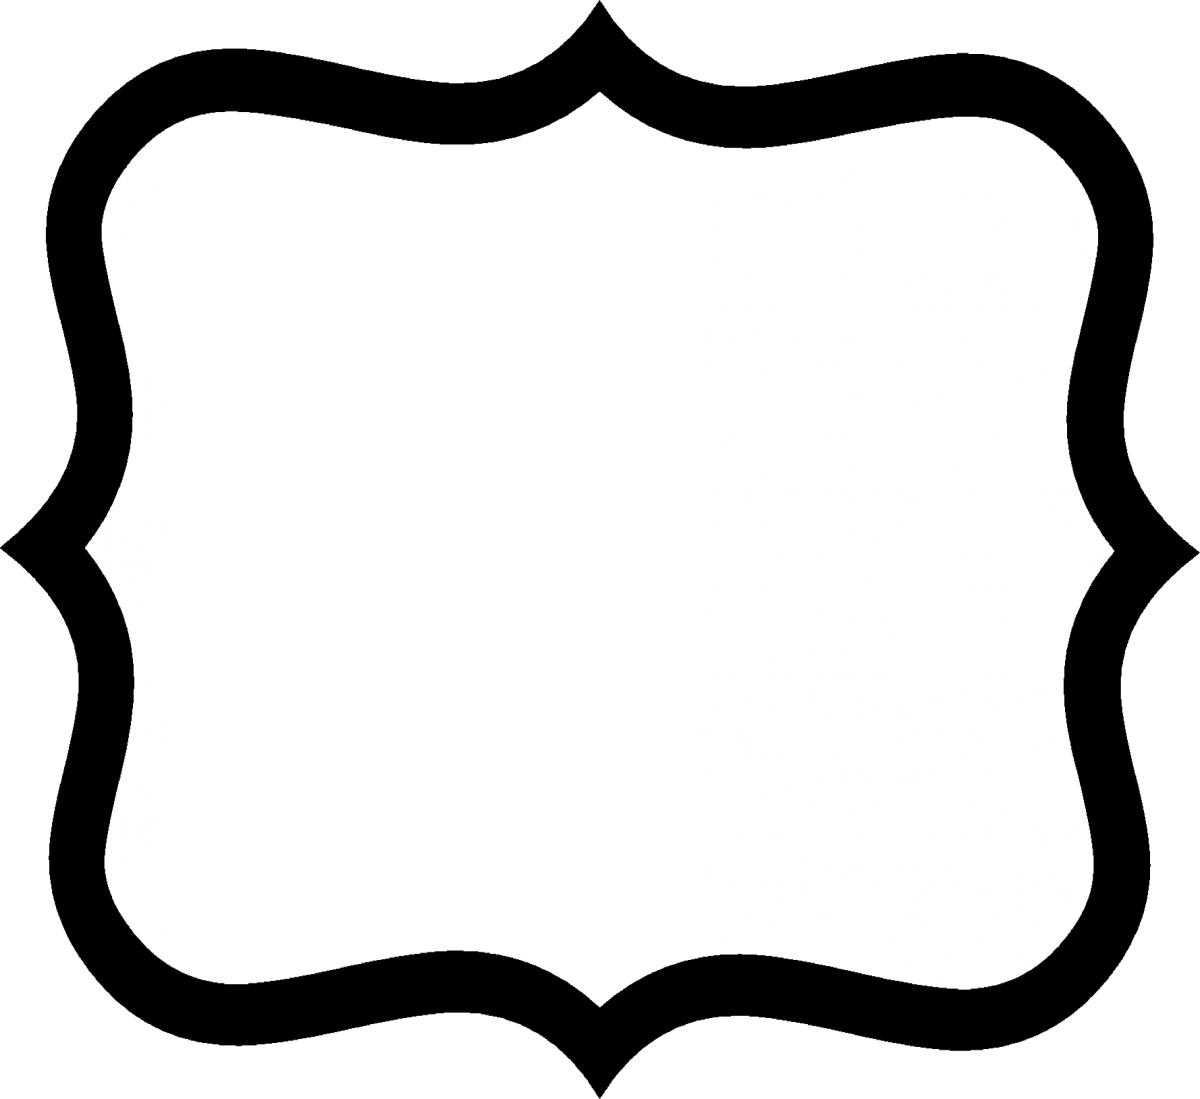 Black and white label png. Fancy shape clip art